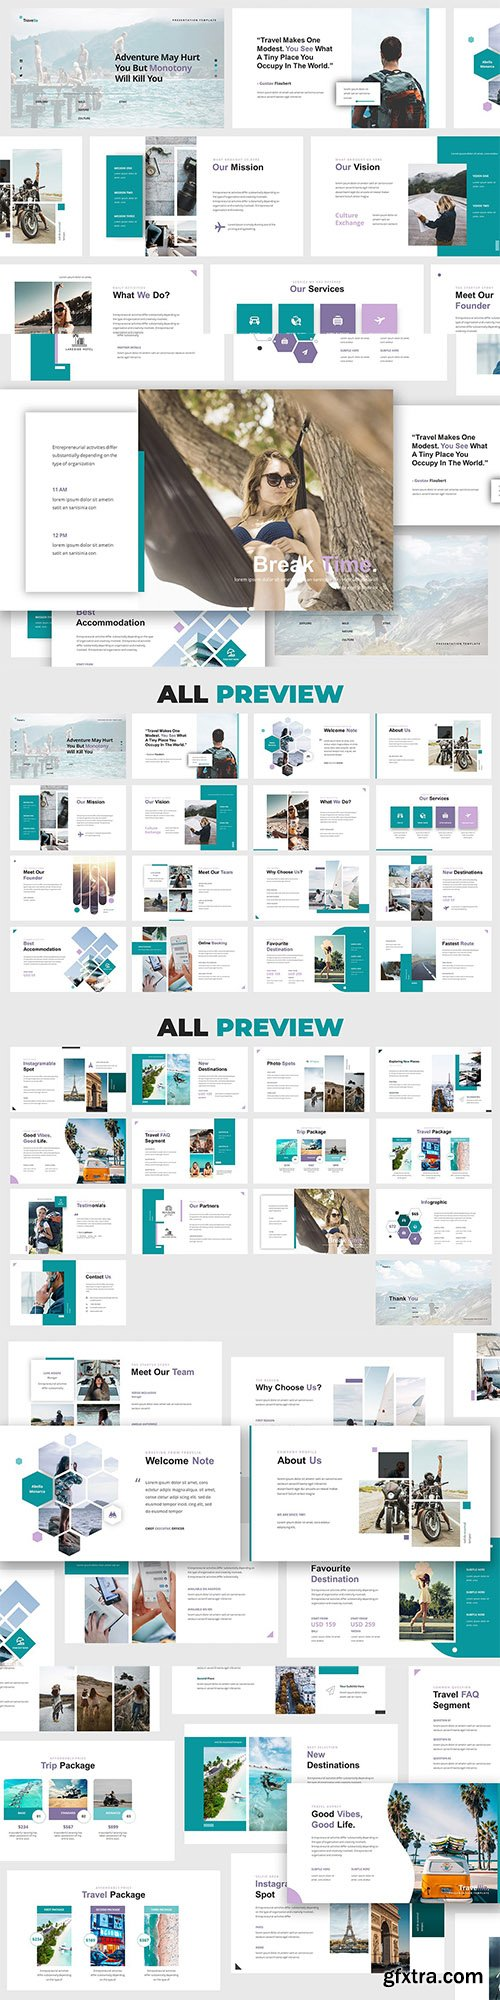 Travellia - Travel Agency Powerpoint and Google Slides Template